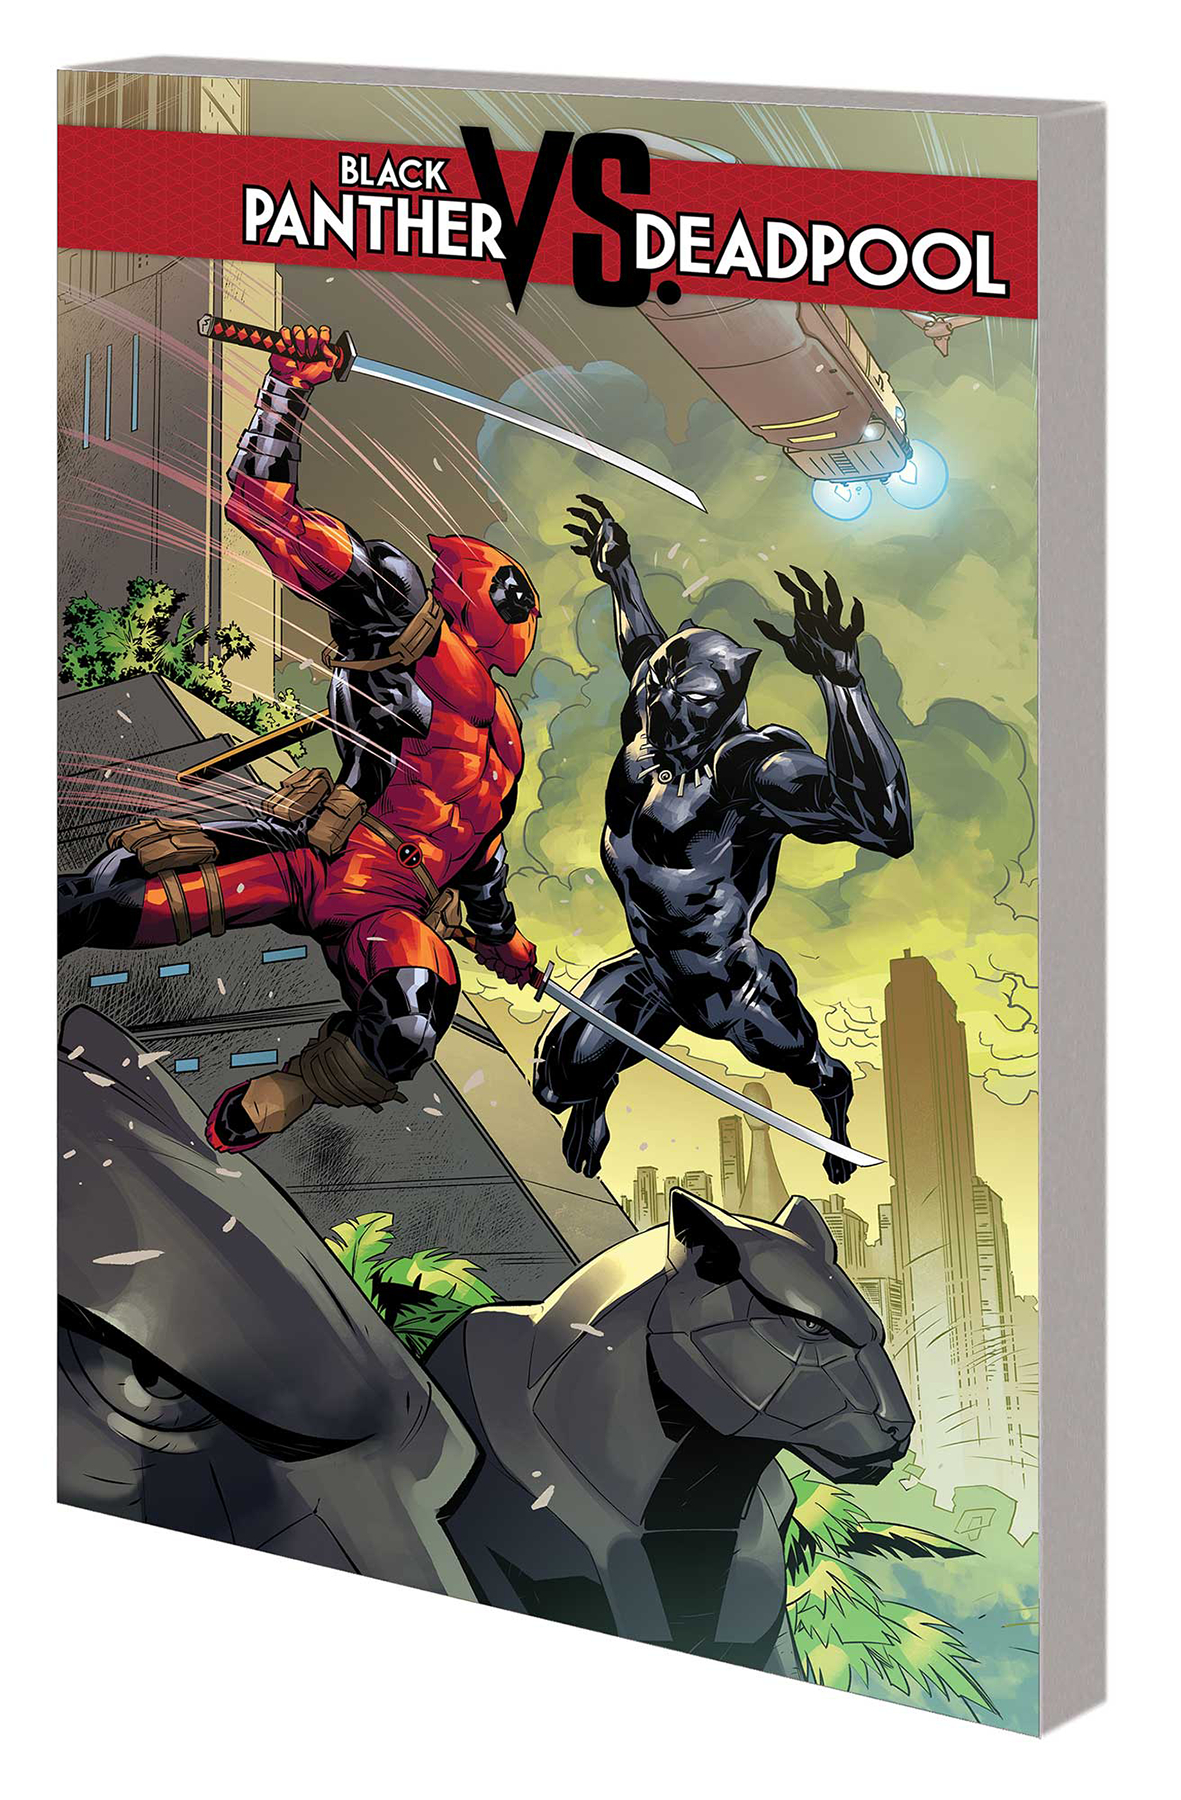 'Black Panther Vs. Deapdool Vol. I' - (W) Daniel Kibblesmith (A) Ricardo Lopez Ortiz (CA) Ryan Benjamin (Marvel, 2019)Deadpool has teamed up with, taken down or taken a beating from just about every hero in the Marvel Universe - and no way is the Black Panther going to miss his turn! Prepare yourself for a hilarious romp through Wakanda as Wade Wilson goes on the hunt for the world's most valuable resource: Vibranium!Collecting BLACK PANTHER VS. DEADPOOL #1-5 from Marvel.Available through mail order or digitally.